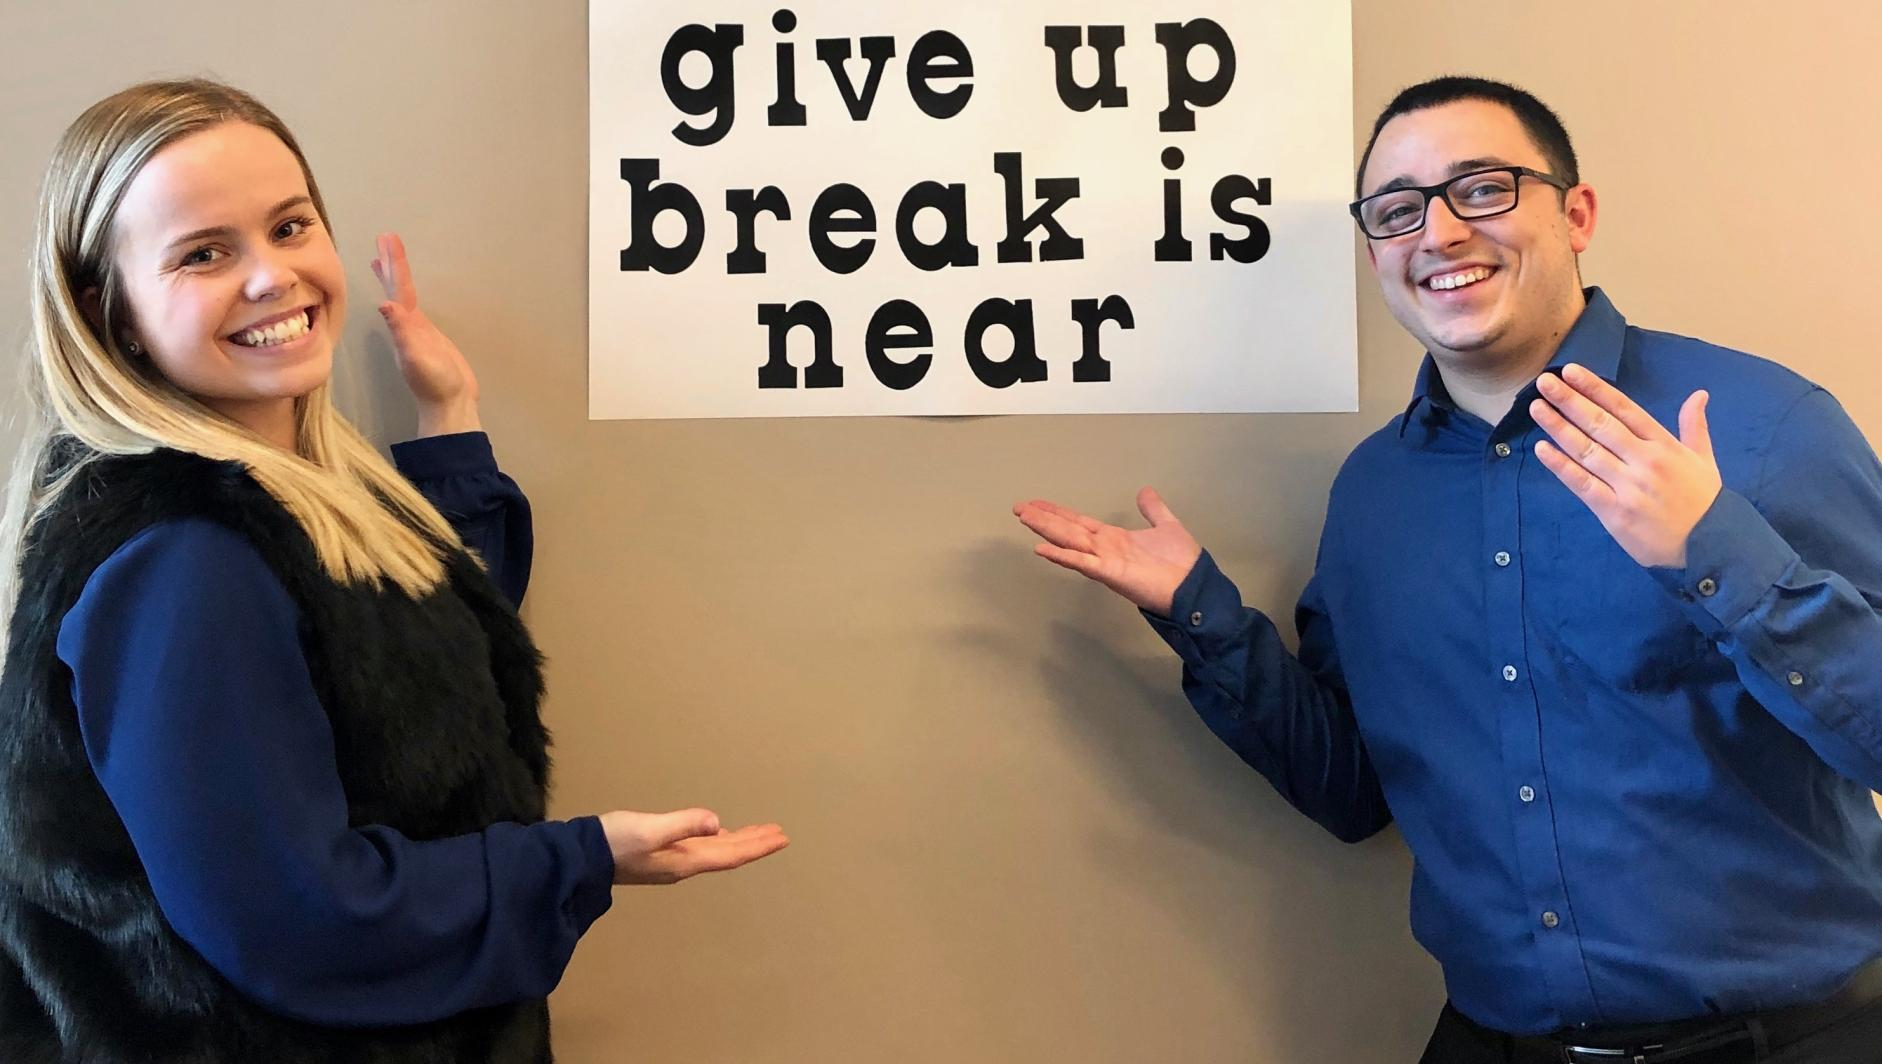 Donut Give Up Break is Near